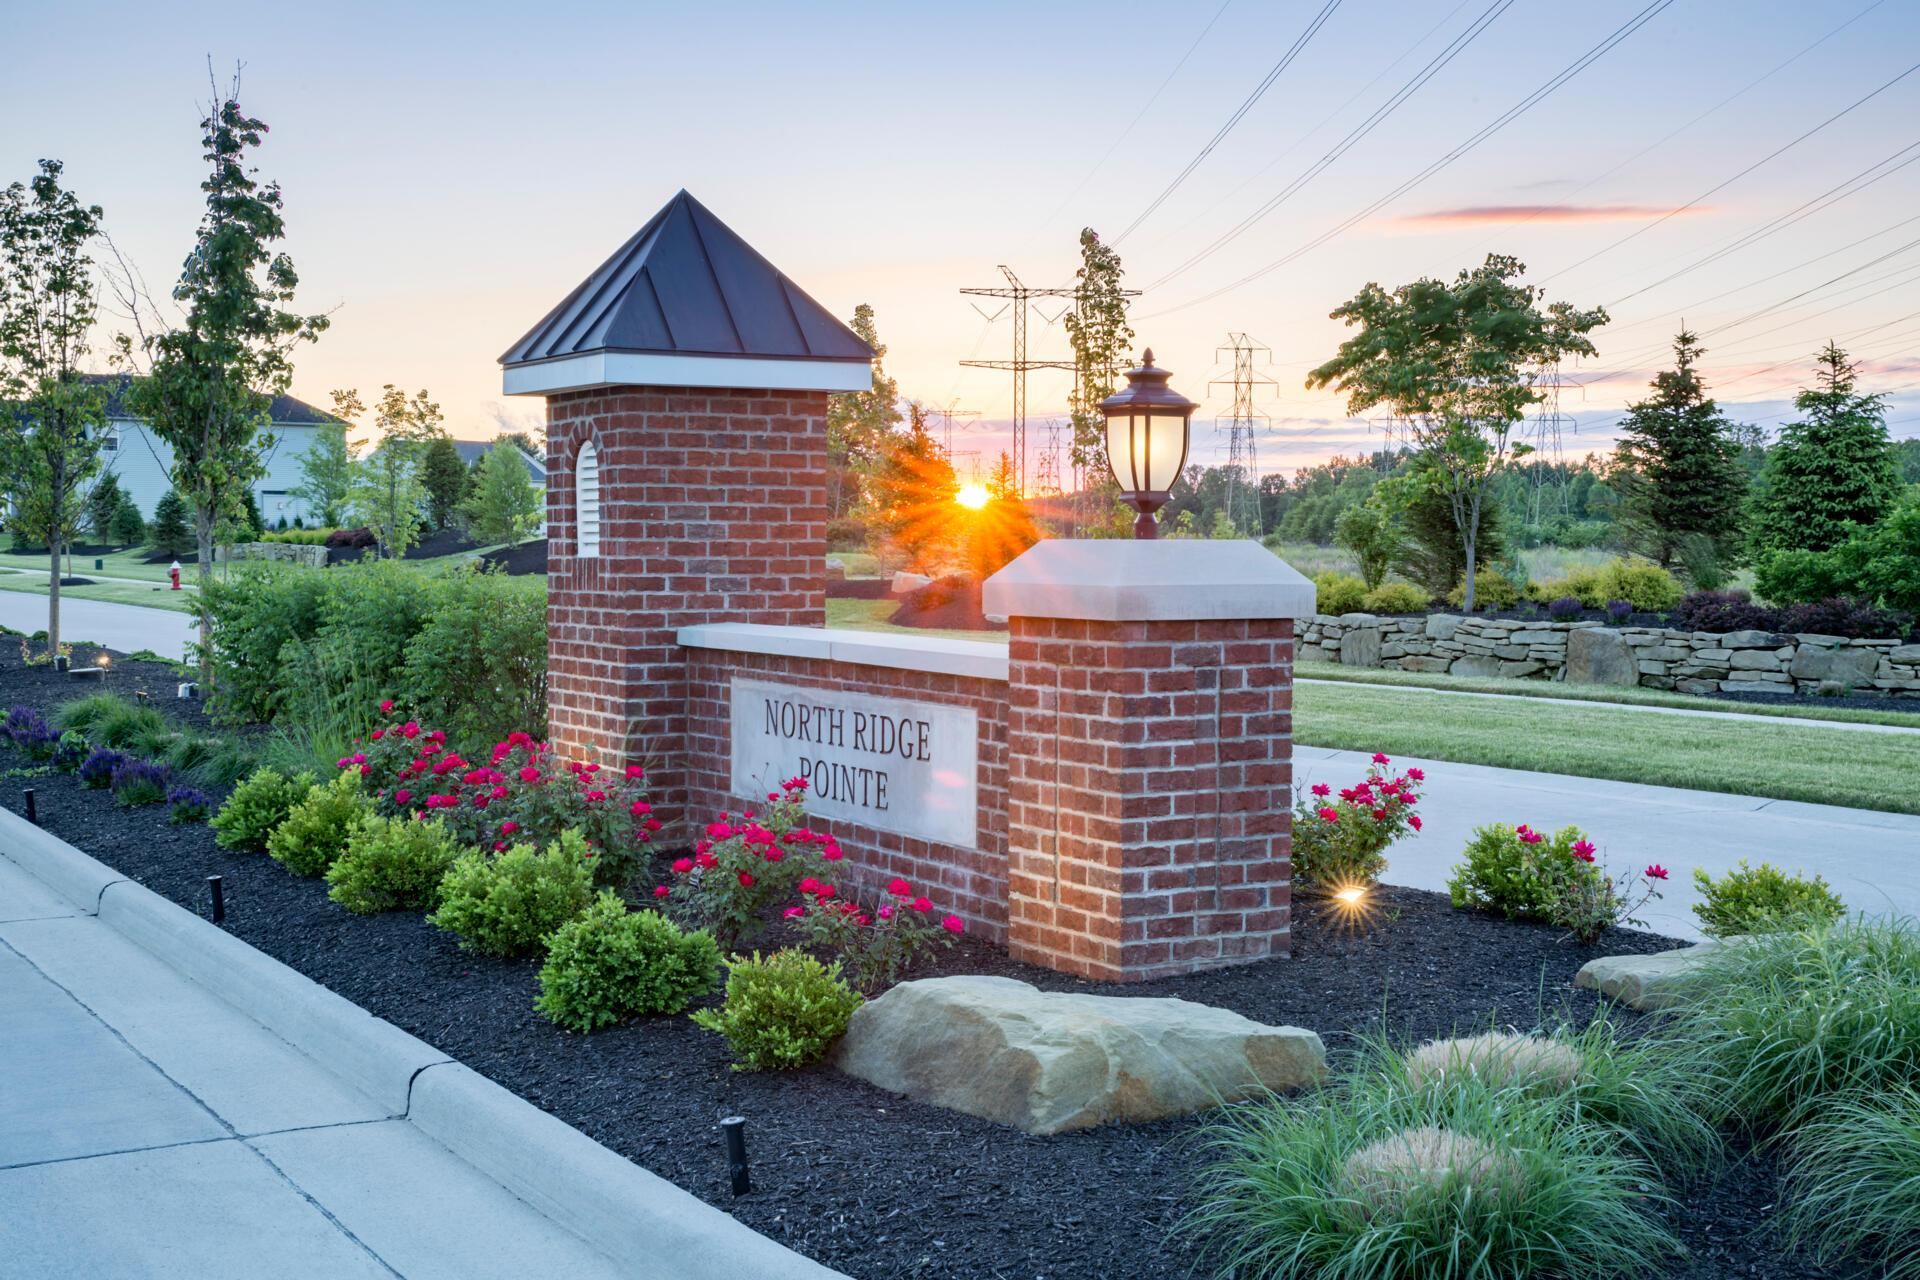 The North Ridge Pointe Community Entrance